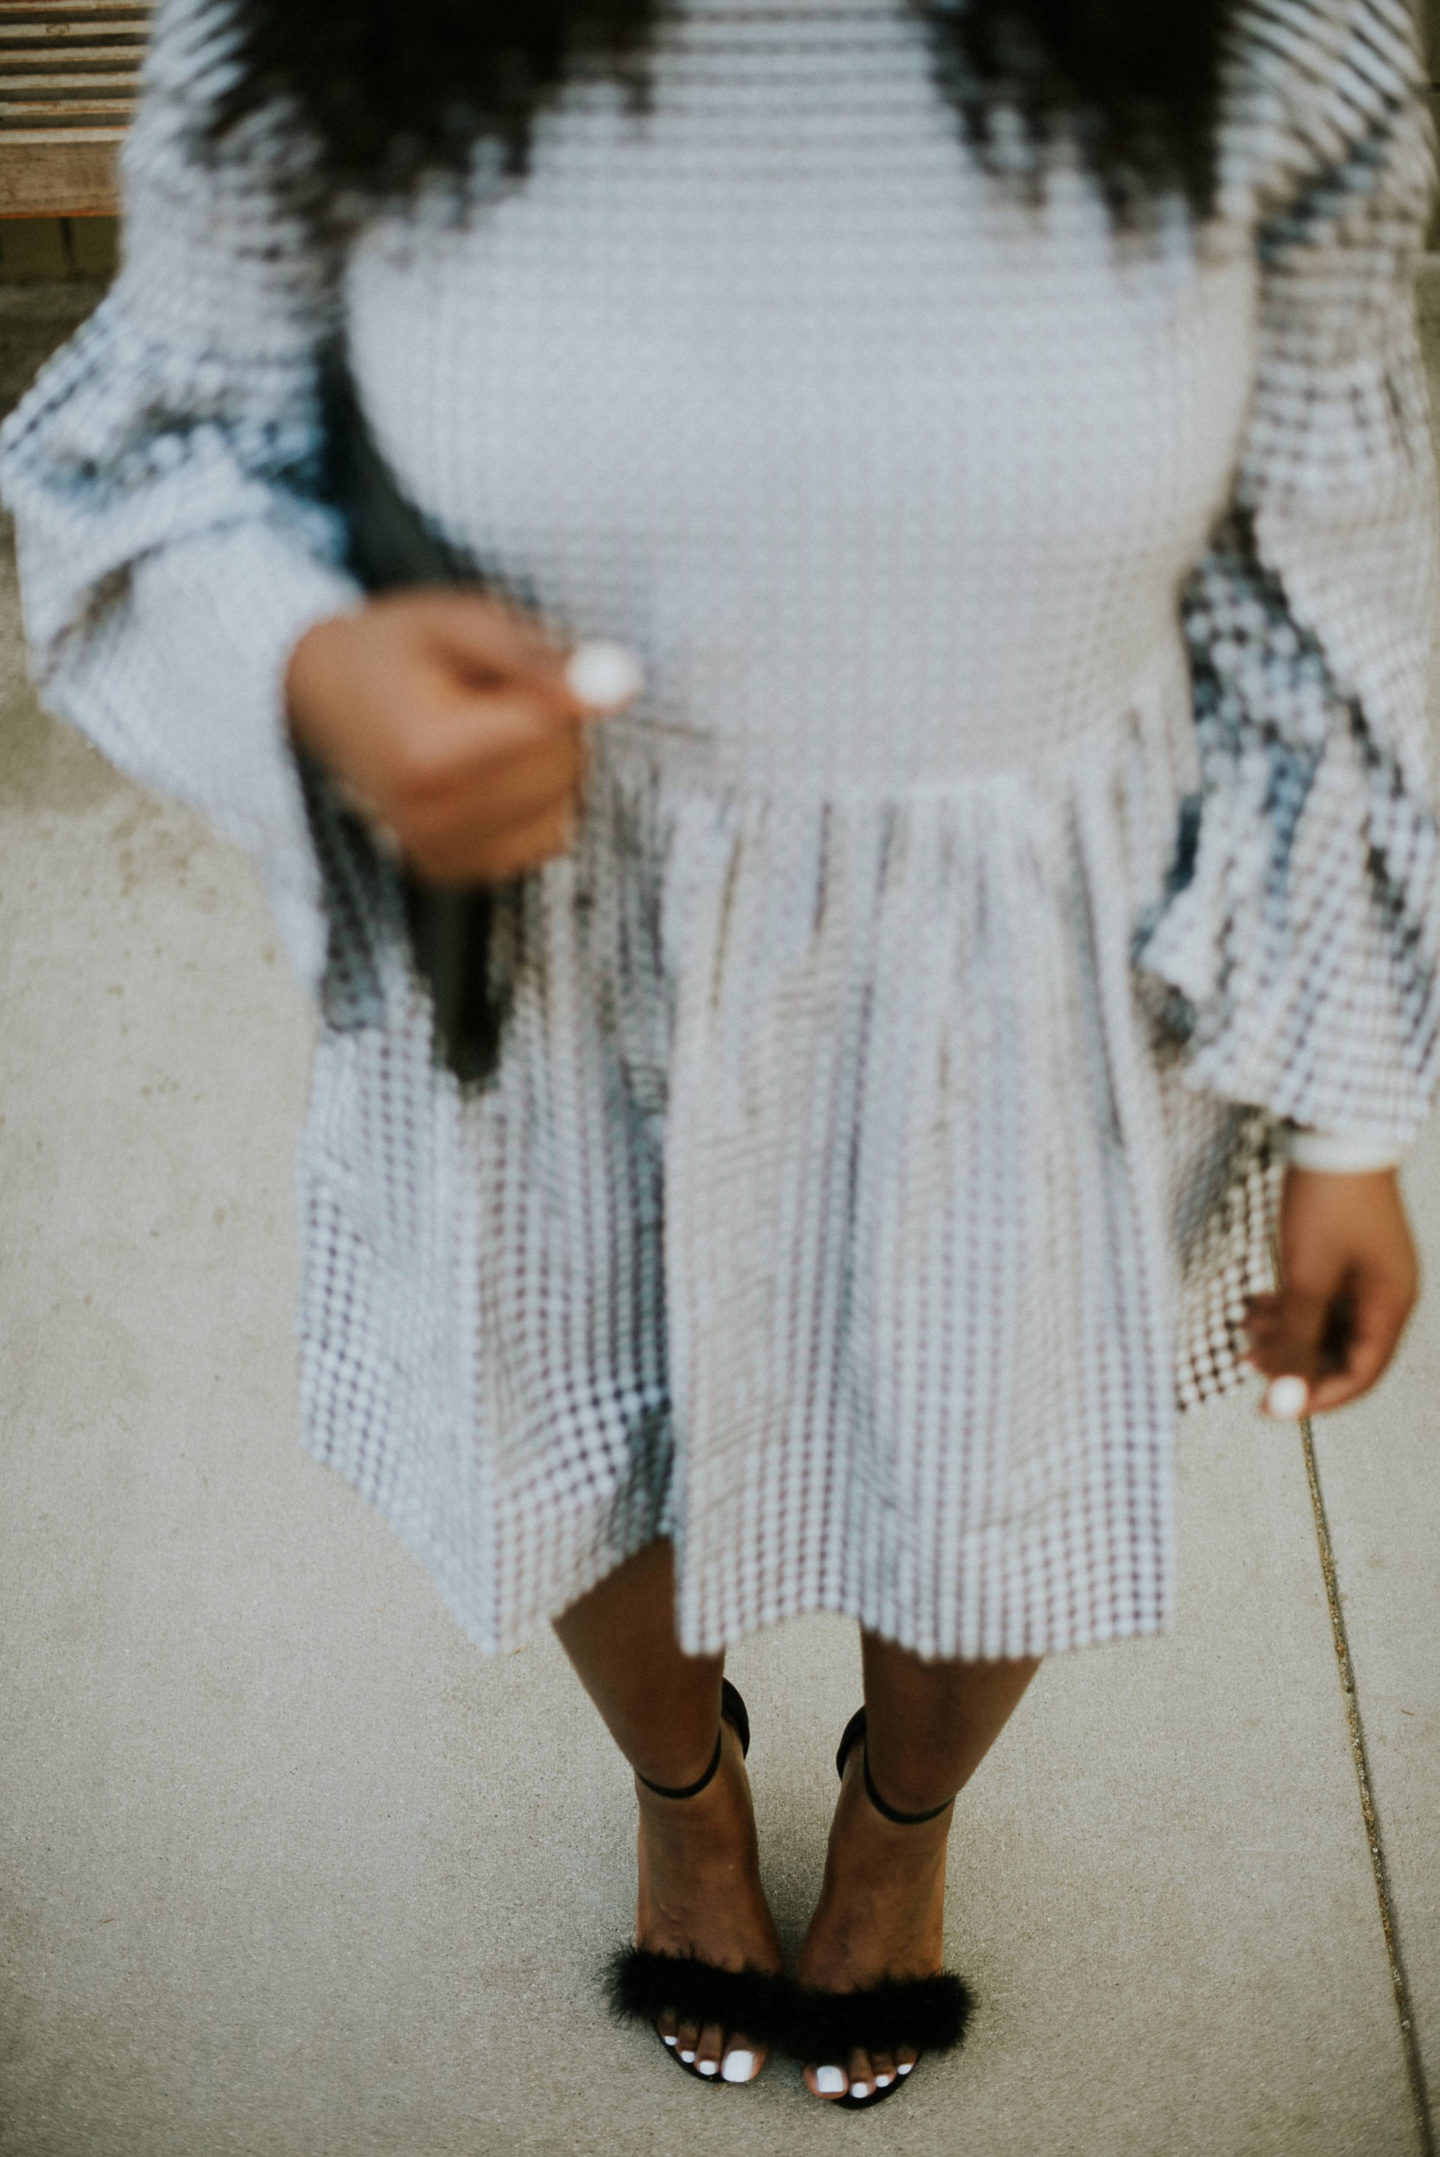 gingham-dresses- shoe shot